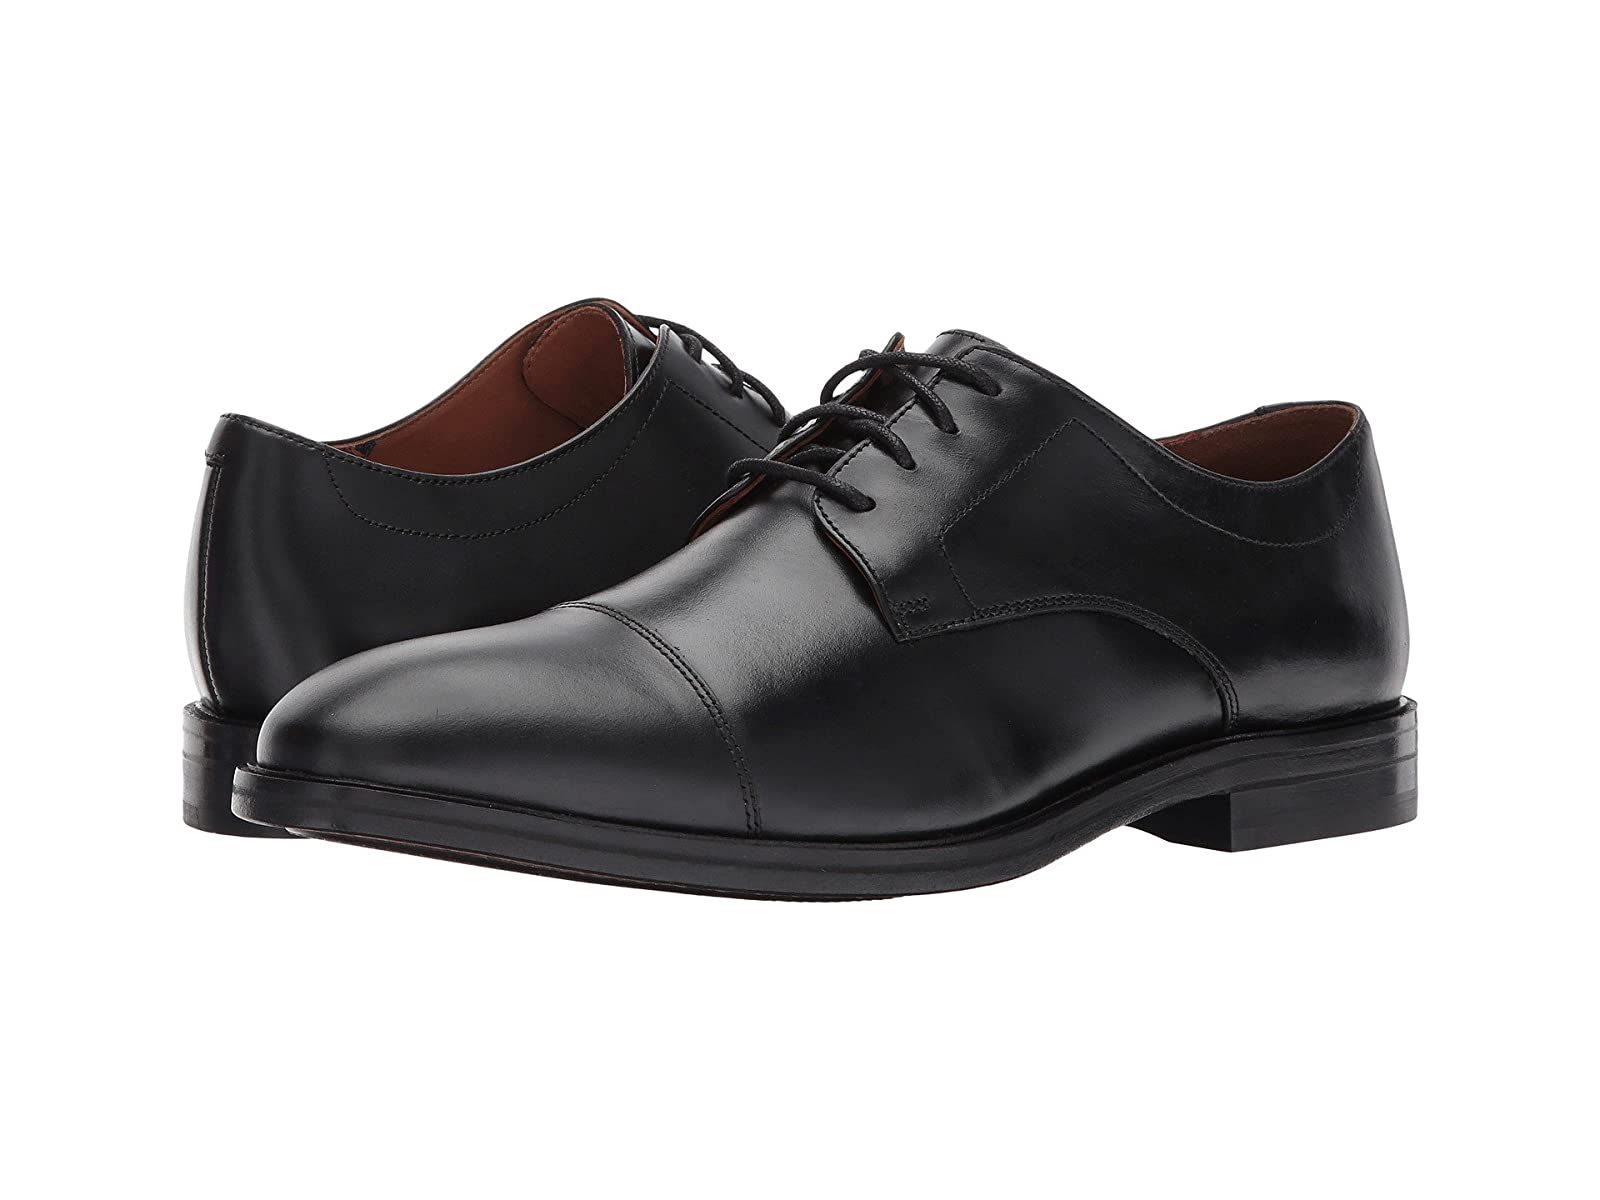 Bostonian Mckewen CapAtmospheric grades have affordable shoes